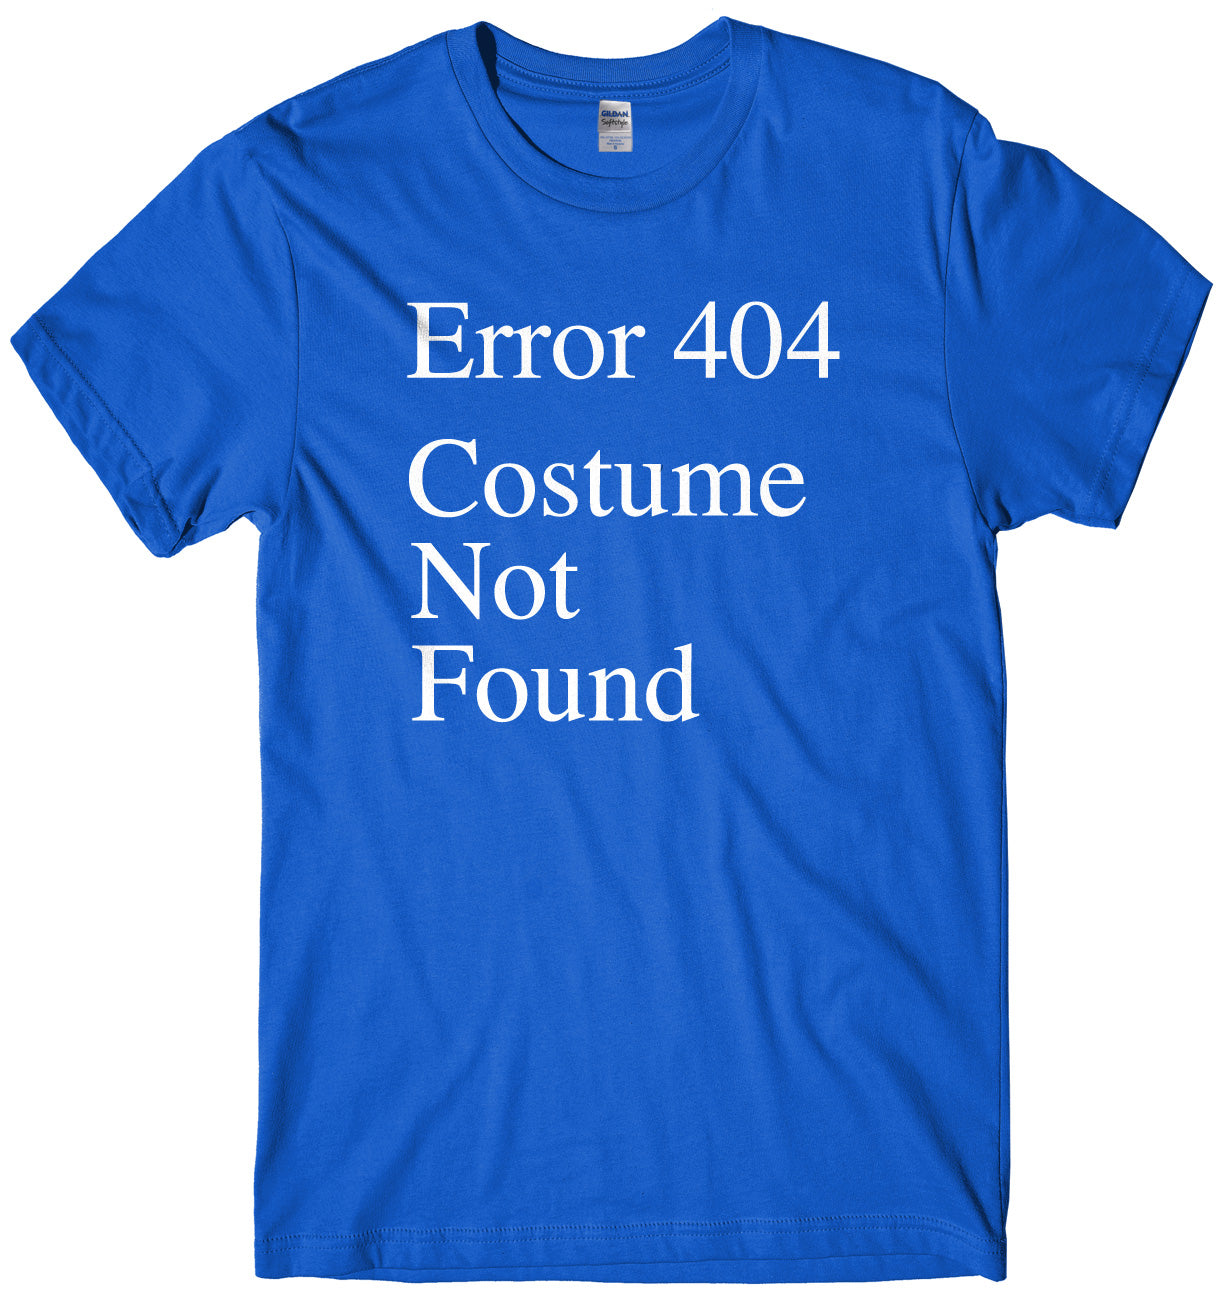 Error 404 Costume Not Found Mens Unisex Halloween T-Shirt